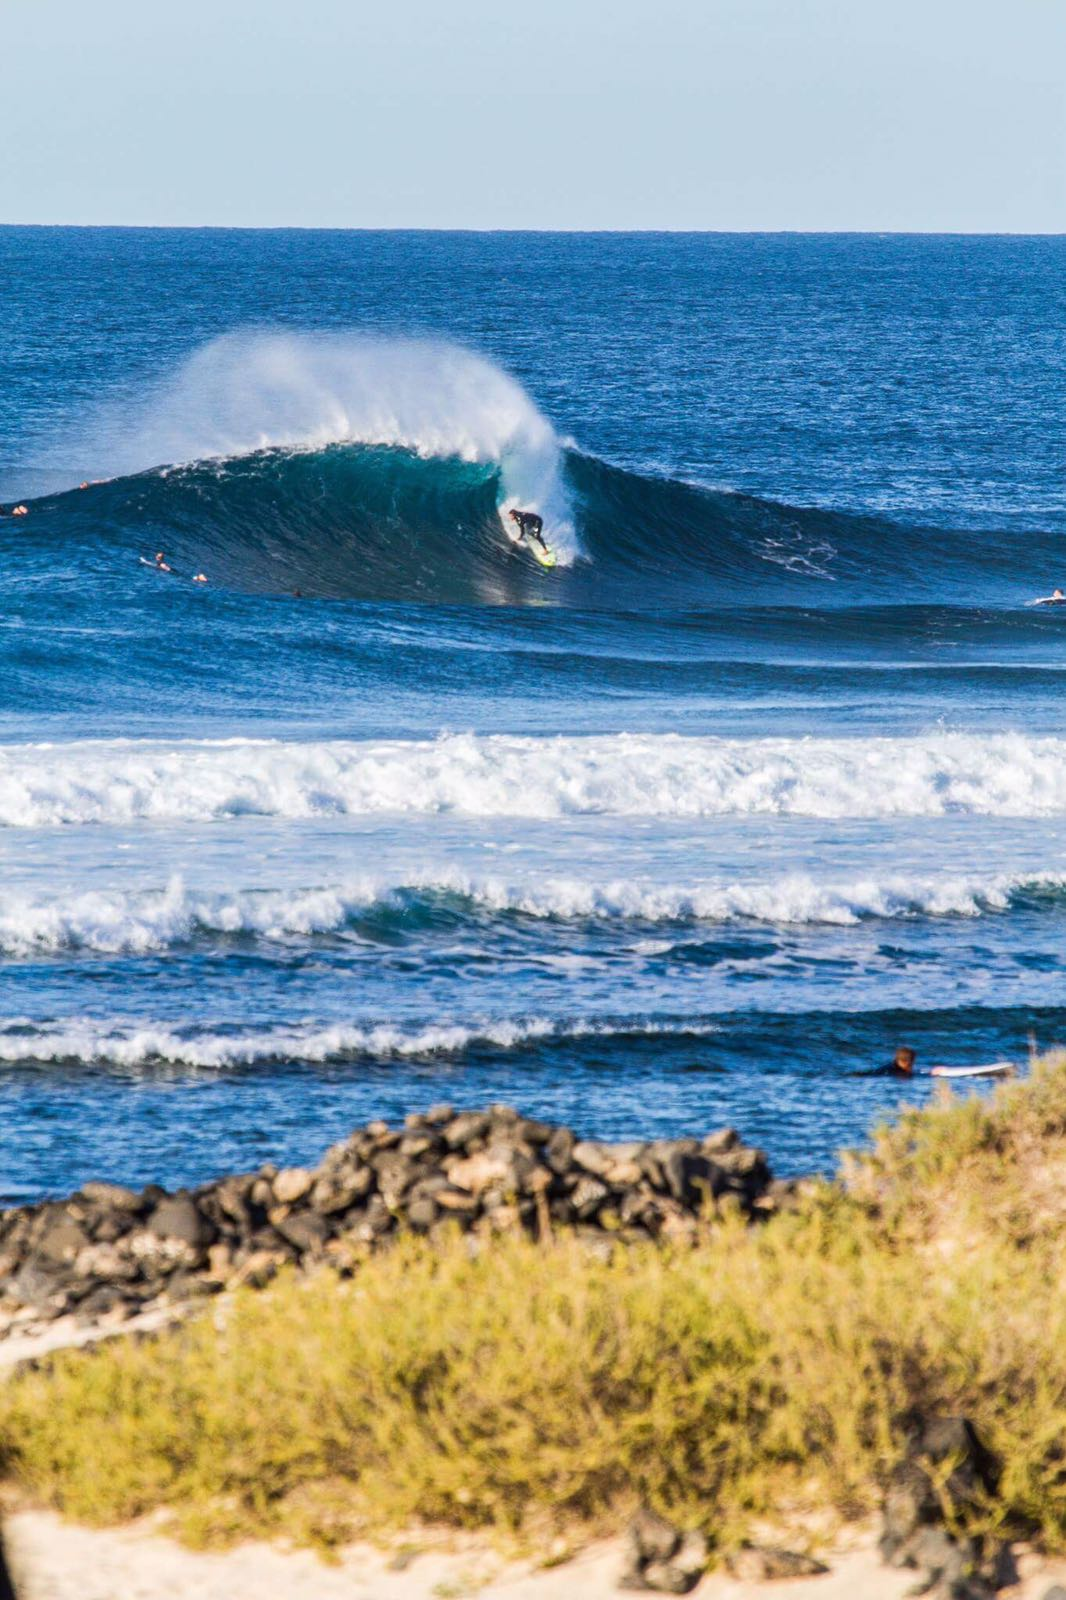 sancho slips into a goodie to evaluate quad fin placement back home. photo: manu migueles